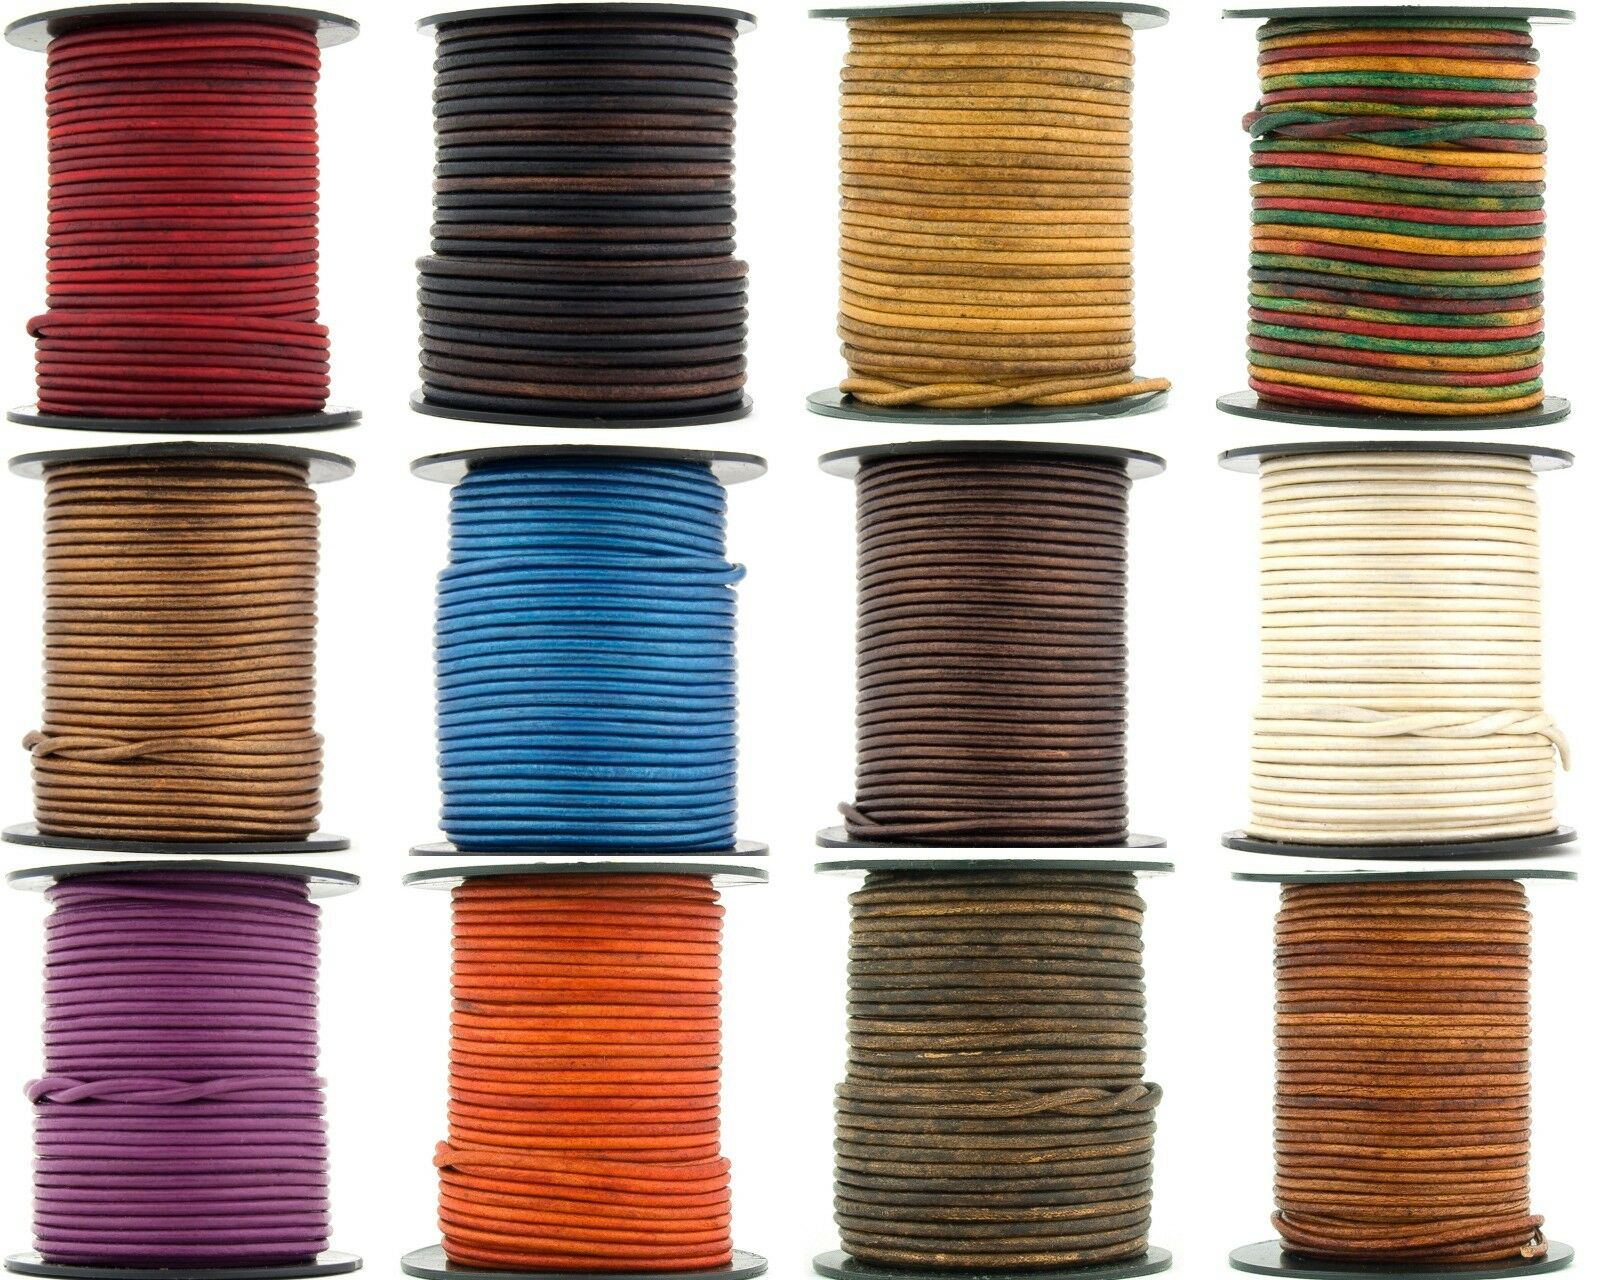 Xsotica® Round Leather Cord 10 Feet Over 65 Colors Available